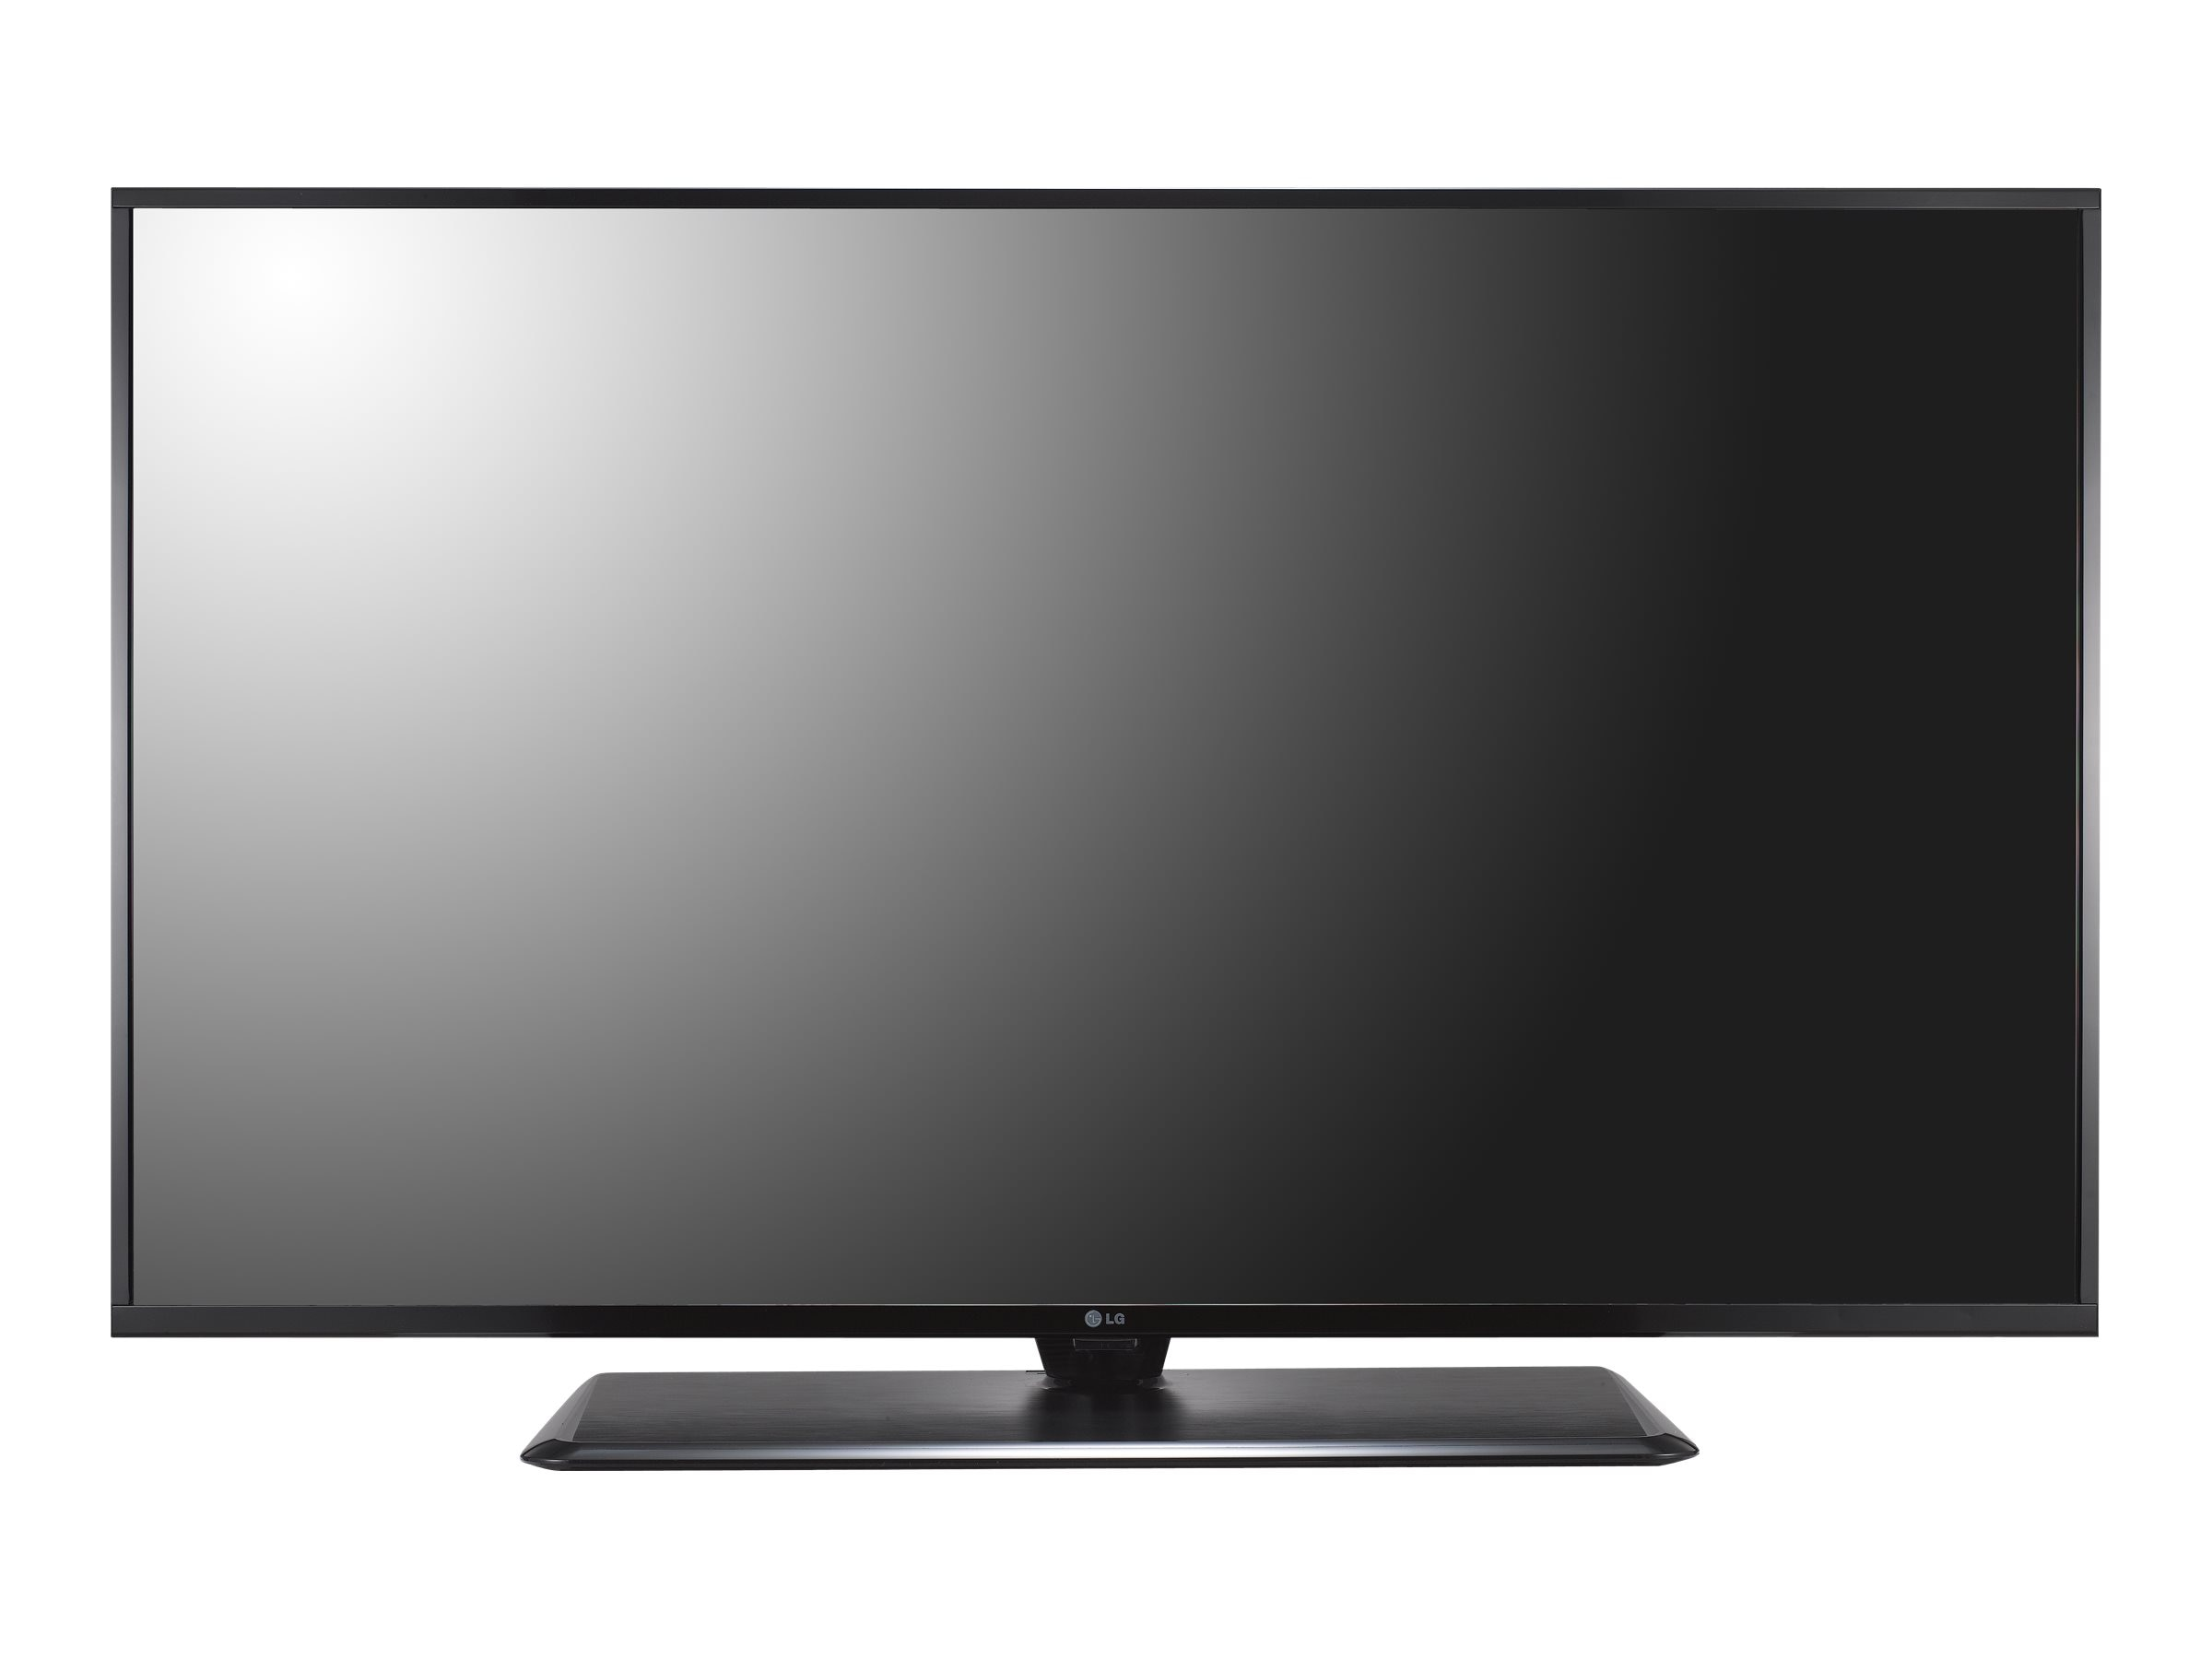 LG 39.5 LX560H Full HD LED-LCD Hospitality TV, Black, 40LX560H